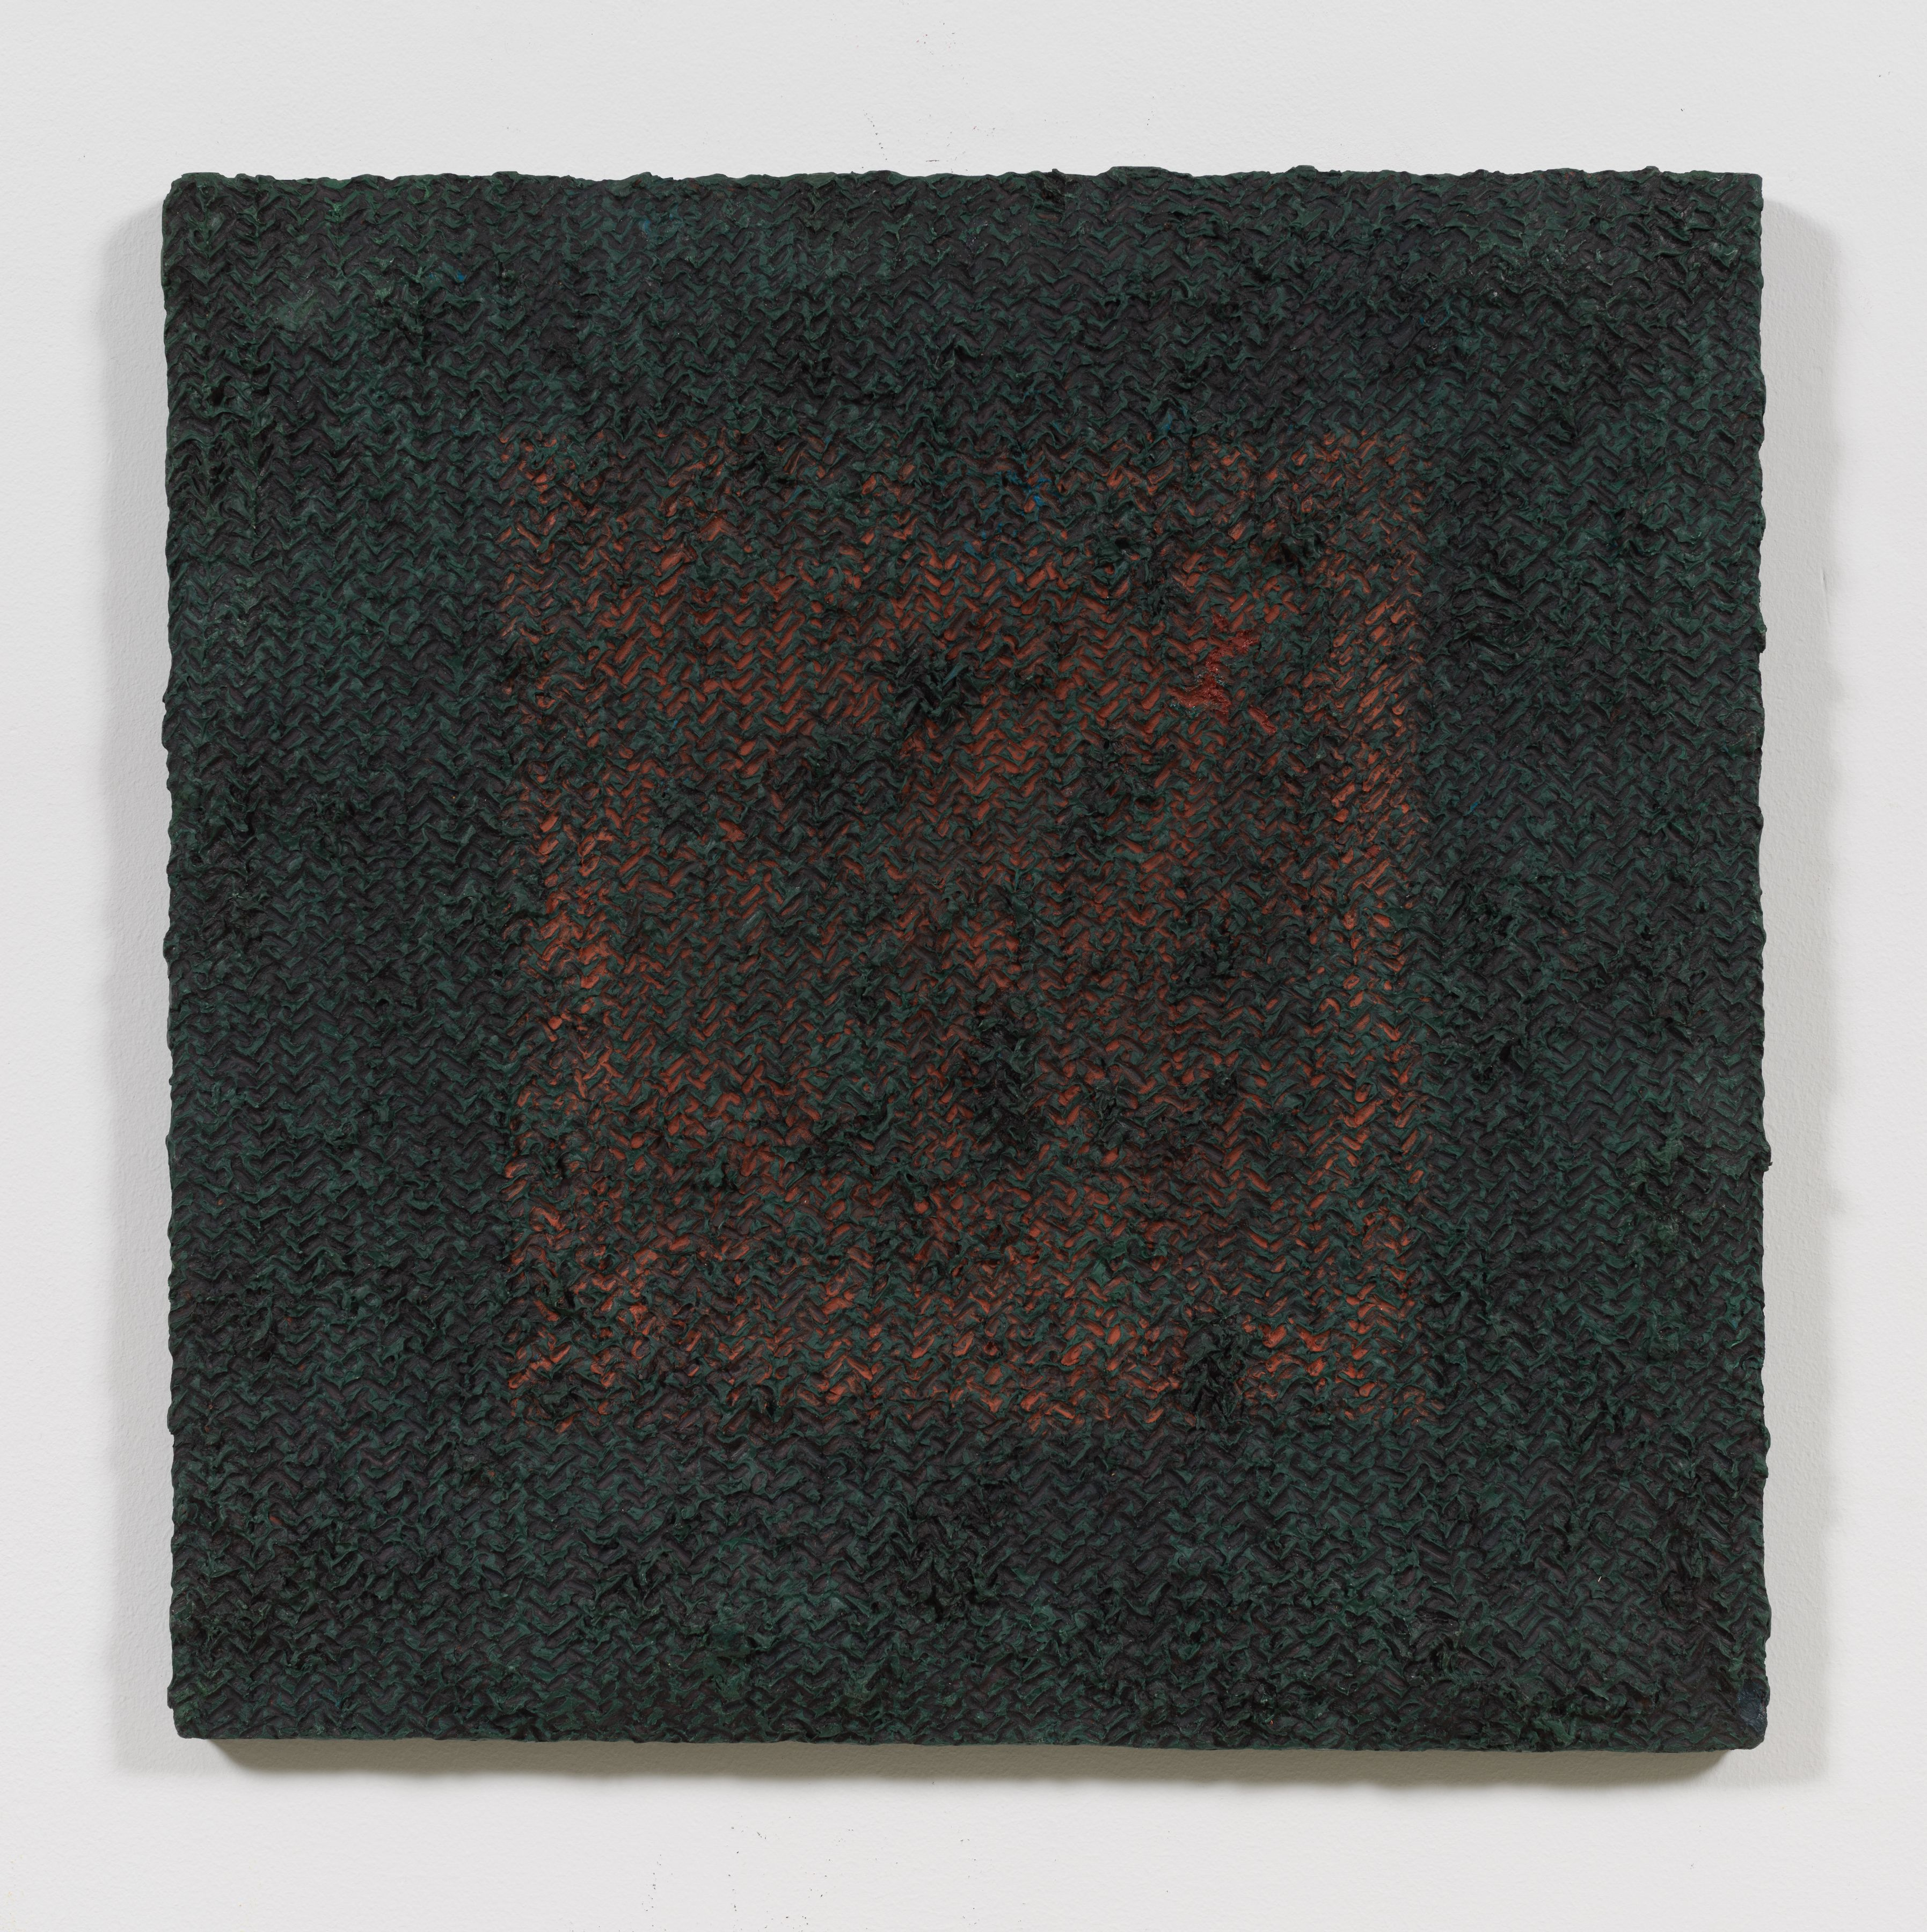 Green Veil, 1975, Oil and Dorland's wax on canvas